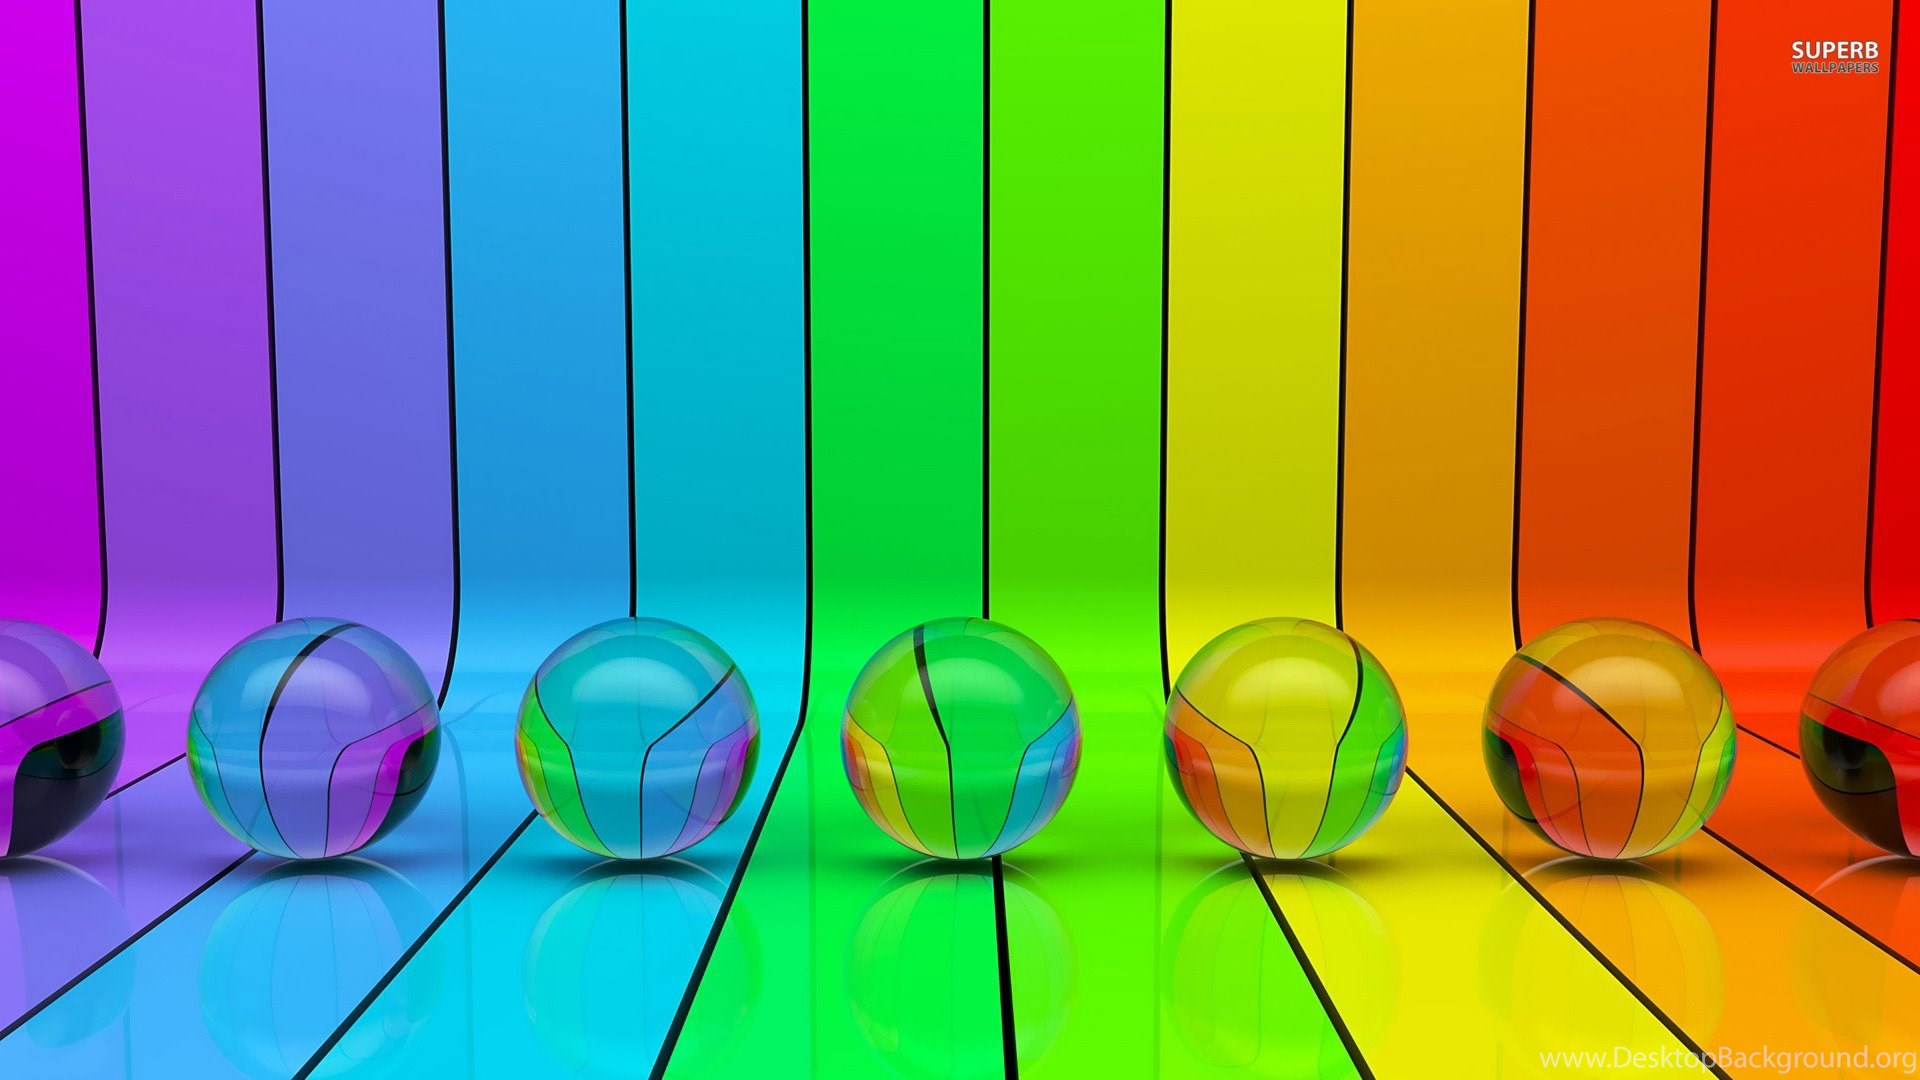 Hd Background Wallpaper 800x600: High Resolution Cool Colorful 3D Rainbow Wallpapers HD 10